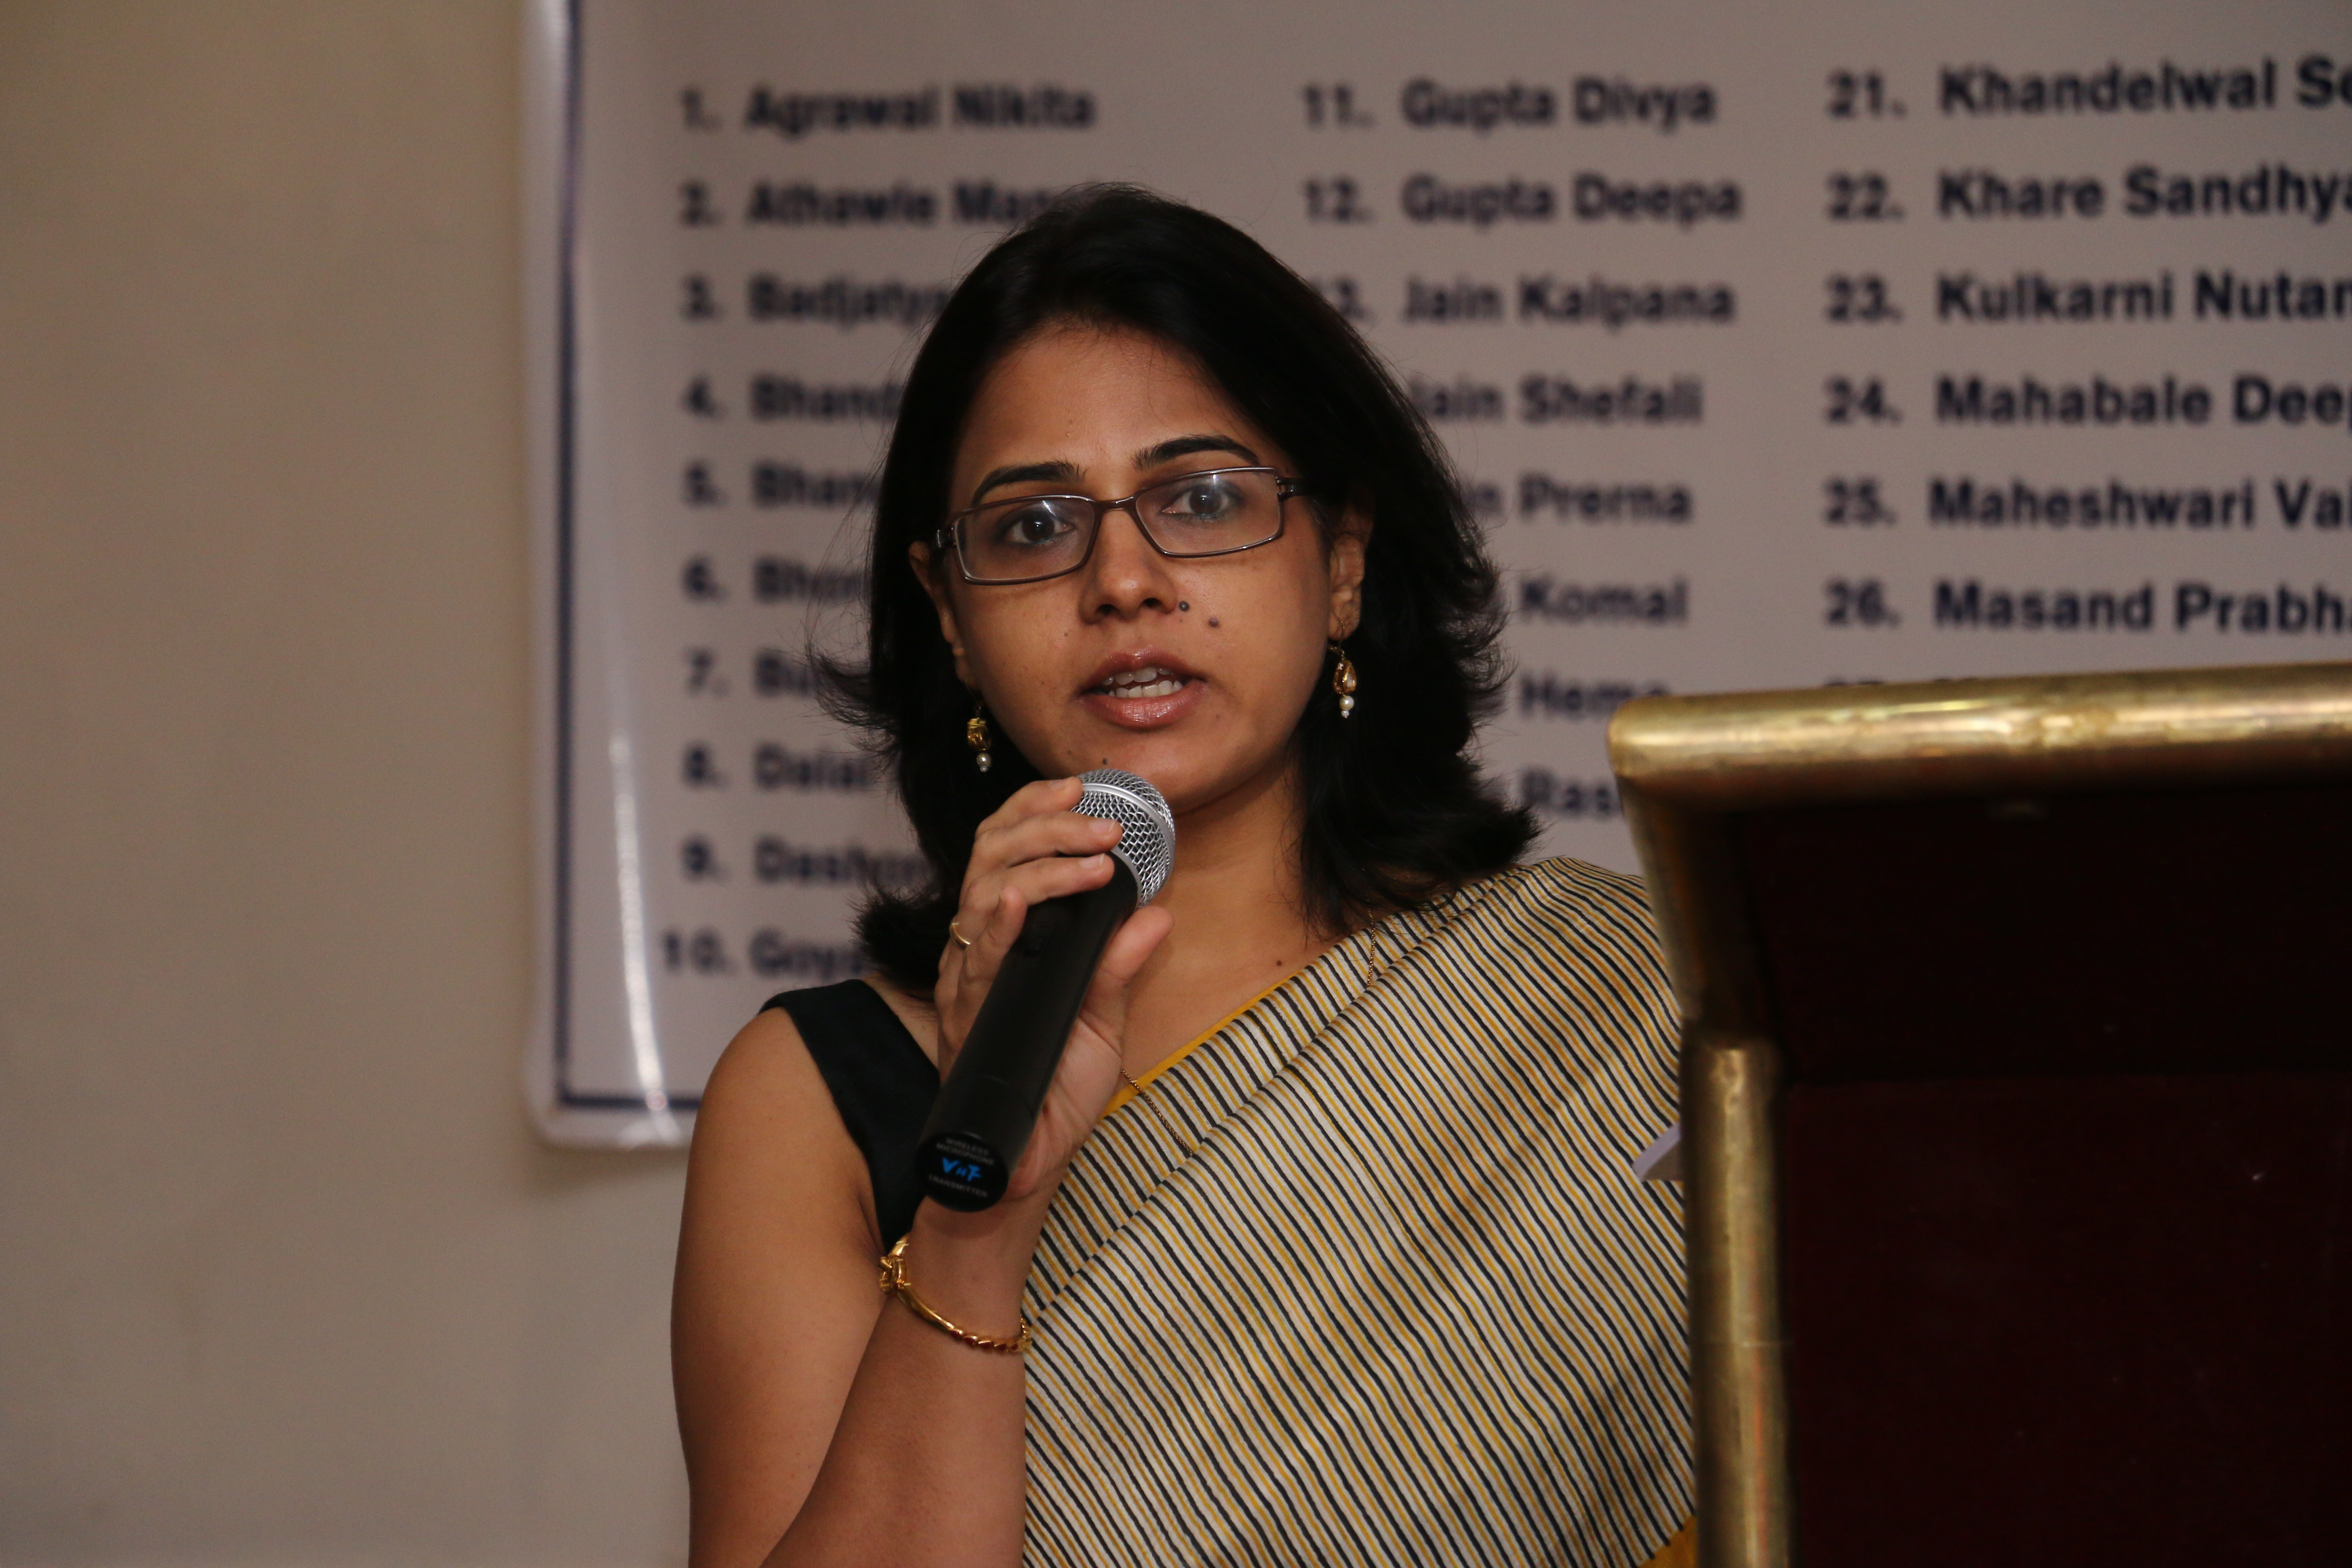 Dr Preeti Parekh Tomar - Gynecologist/Obstetrician